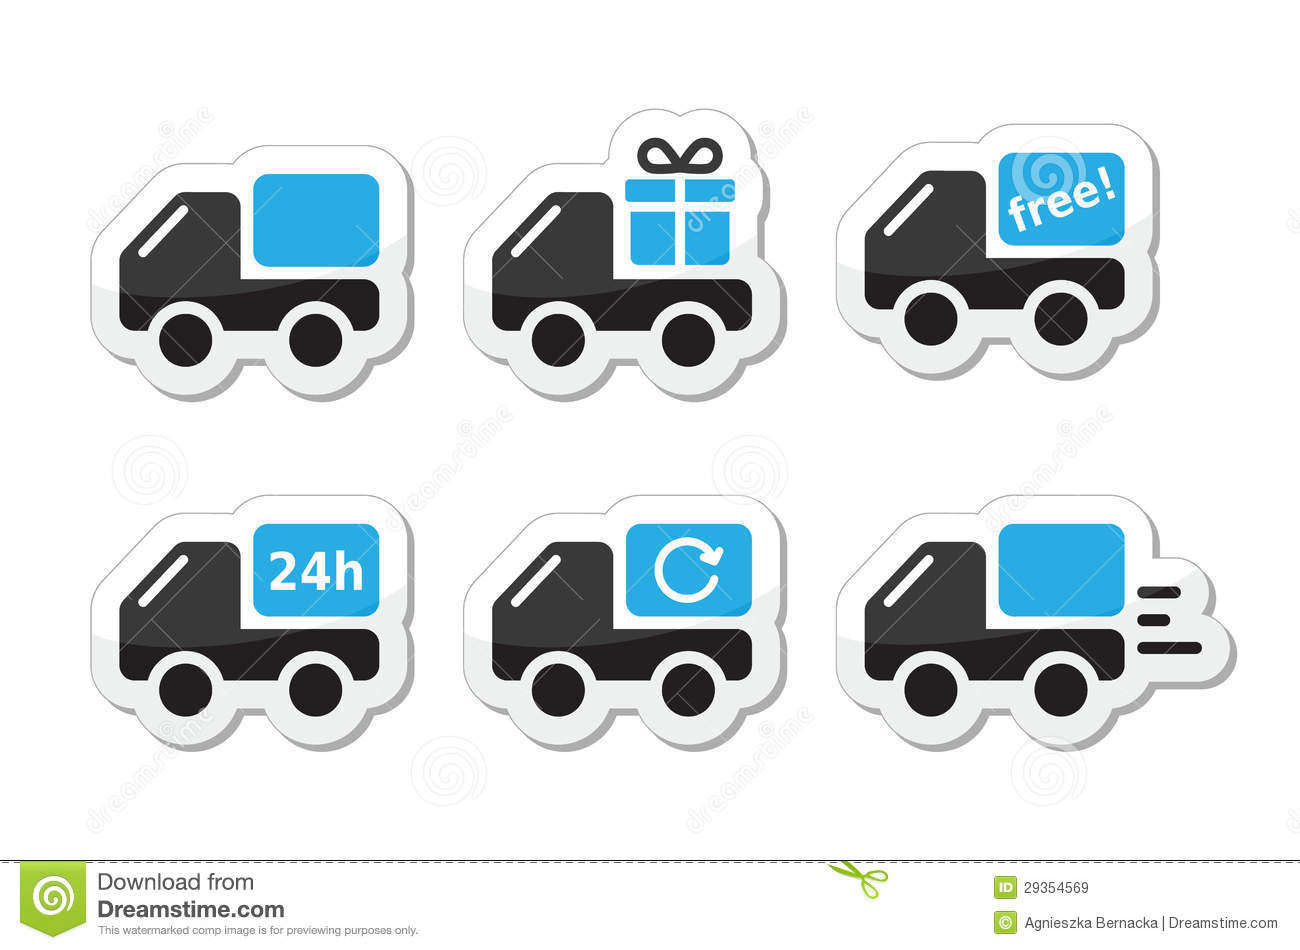 Car sticker design vector free - Delivery Car Shipping Icons Set Royalty Free Stock Images Image